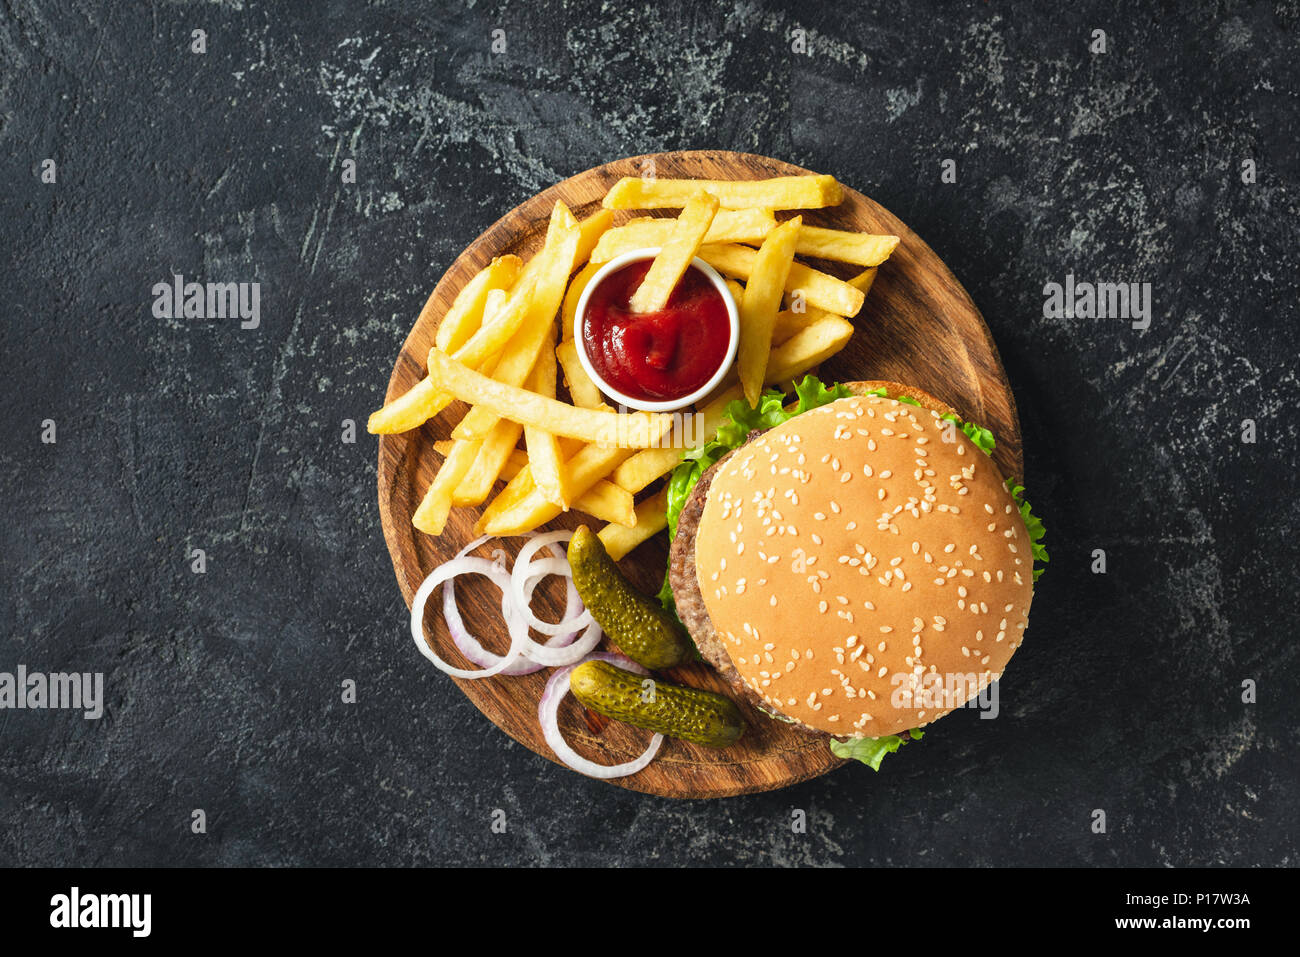 Burger, hamburger or cheeseburger served with french fries, pickles and onion on wooden board. Top view. Fast food concept Stock Photo